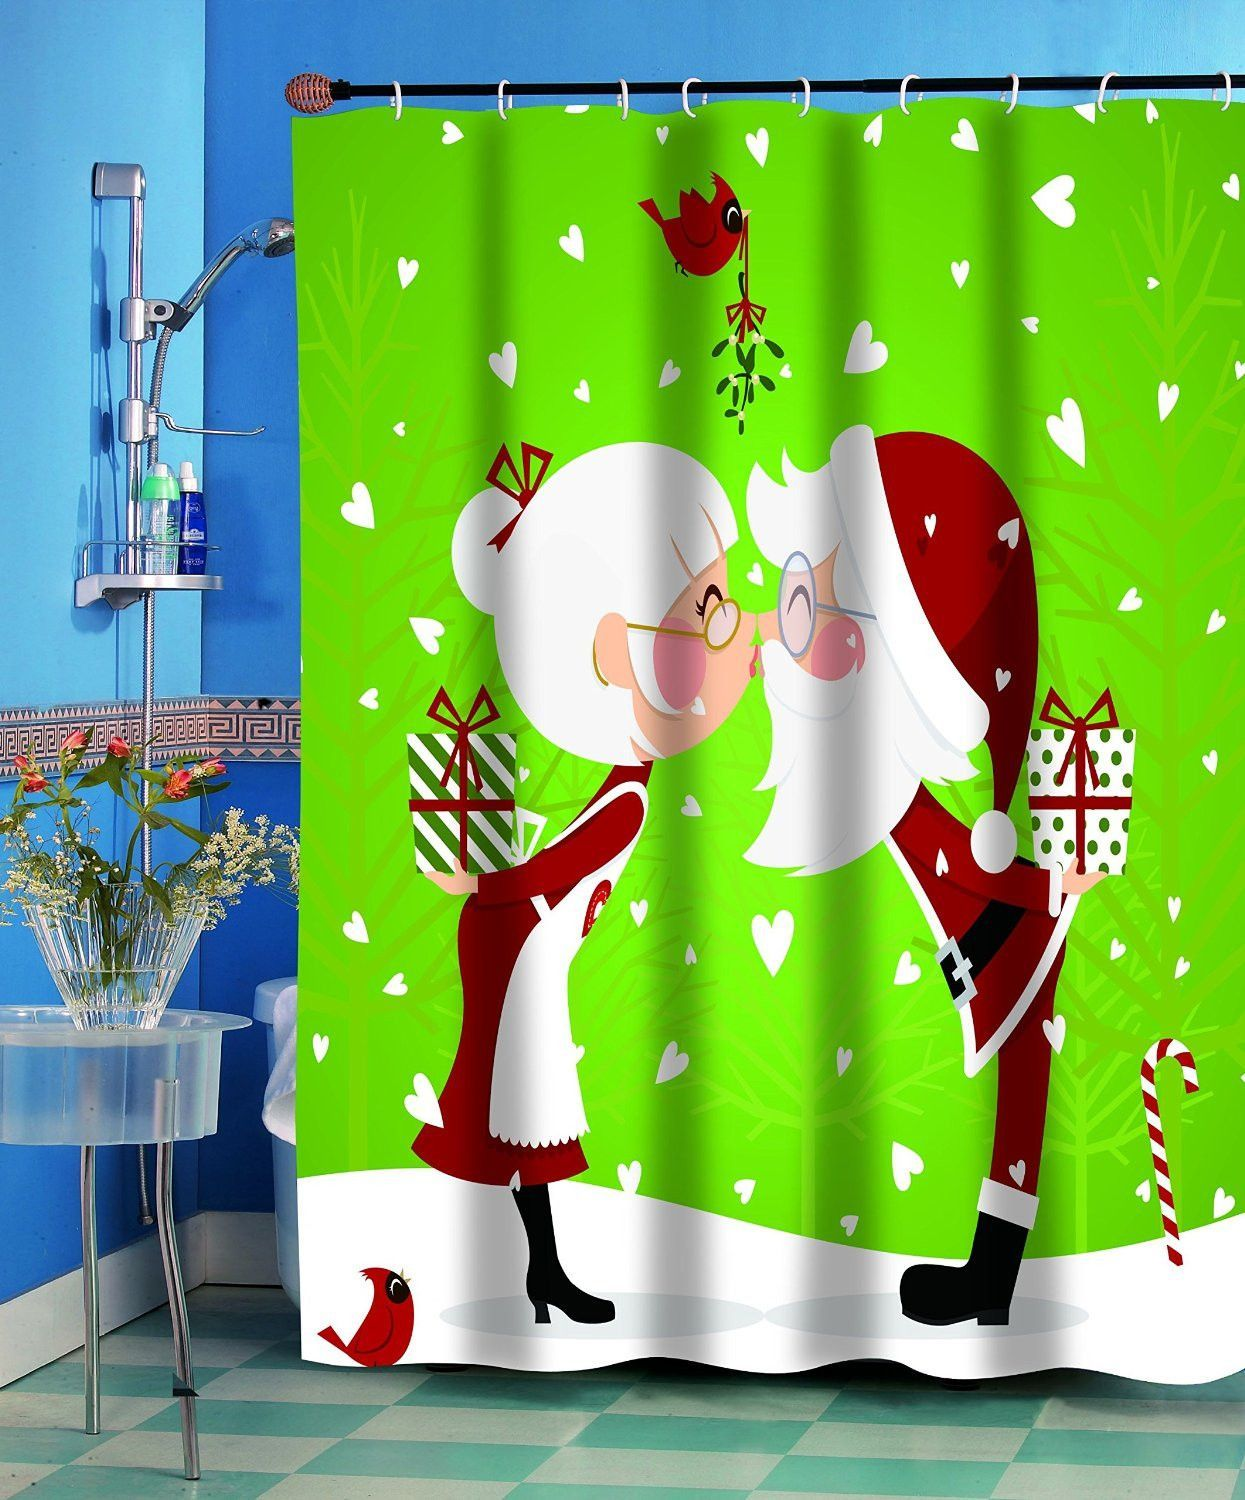 Merry Christmas Bathroom Wish Collection Holiday Fabric Shower ...